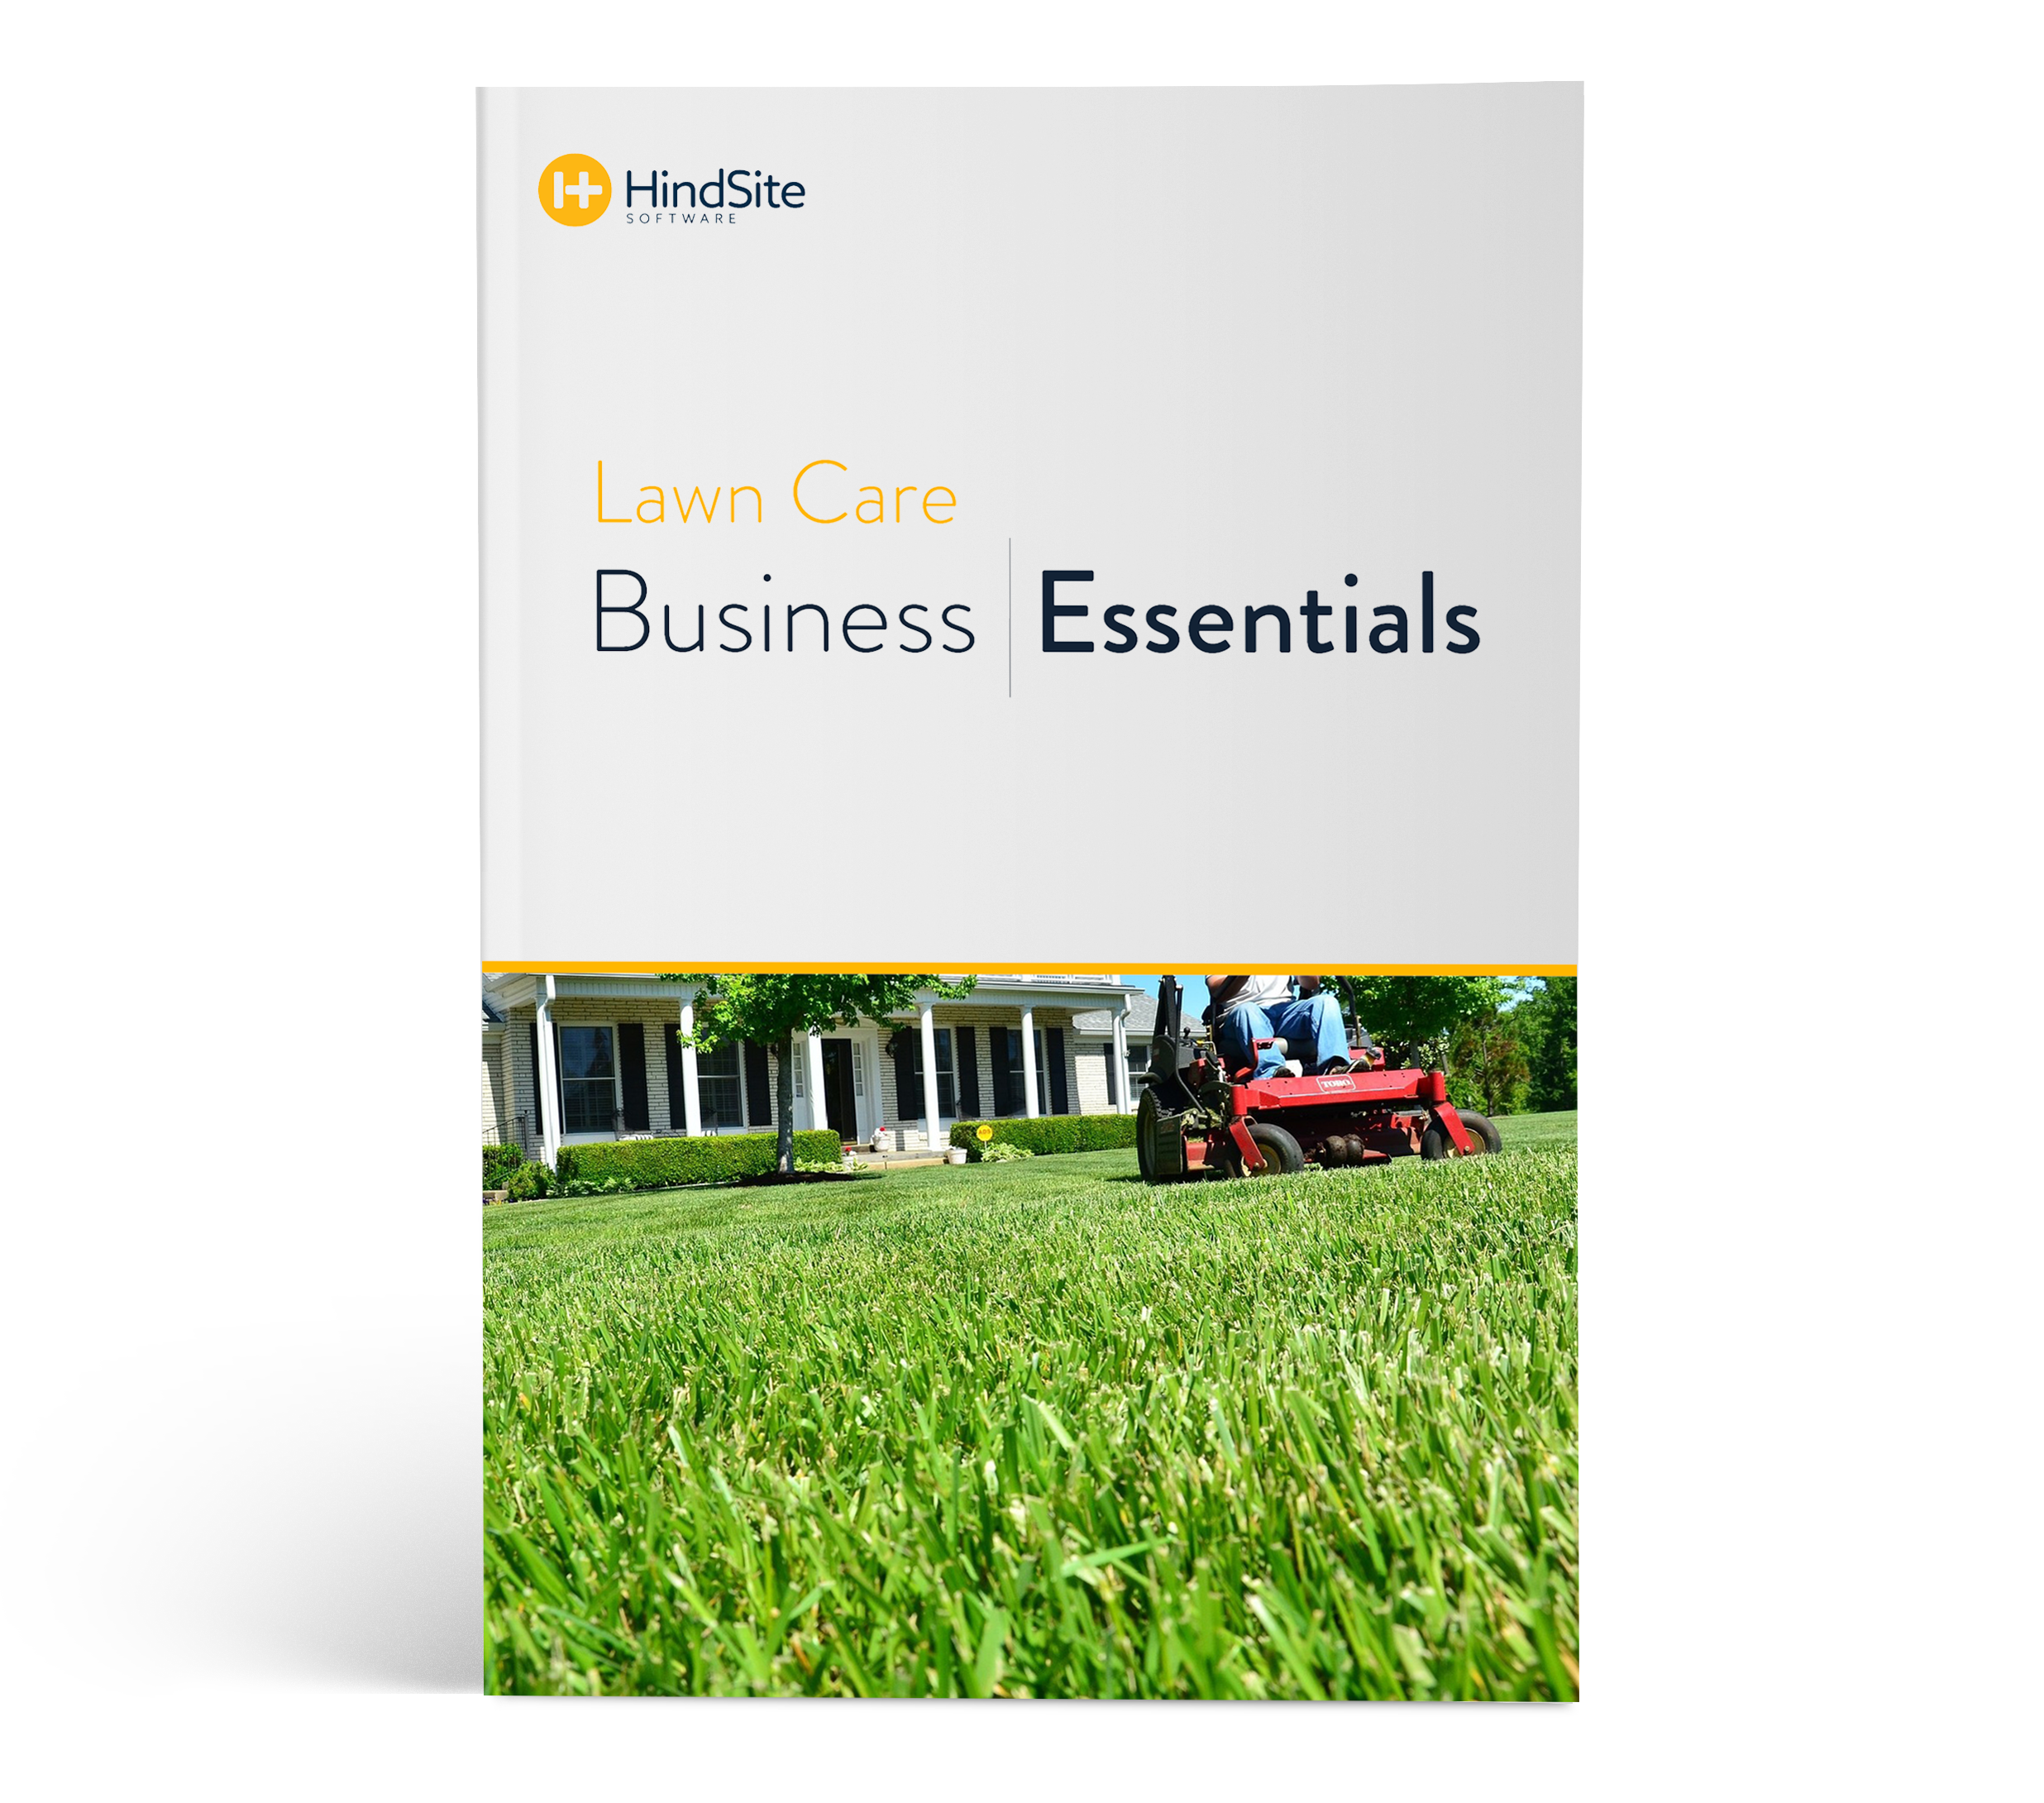 Lawn Care Business Essentials